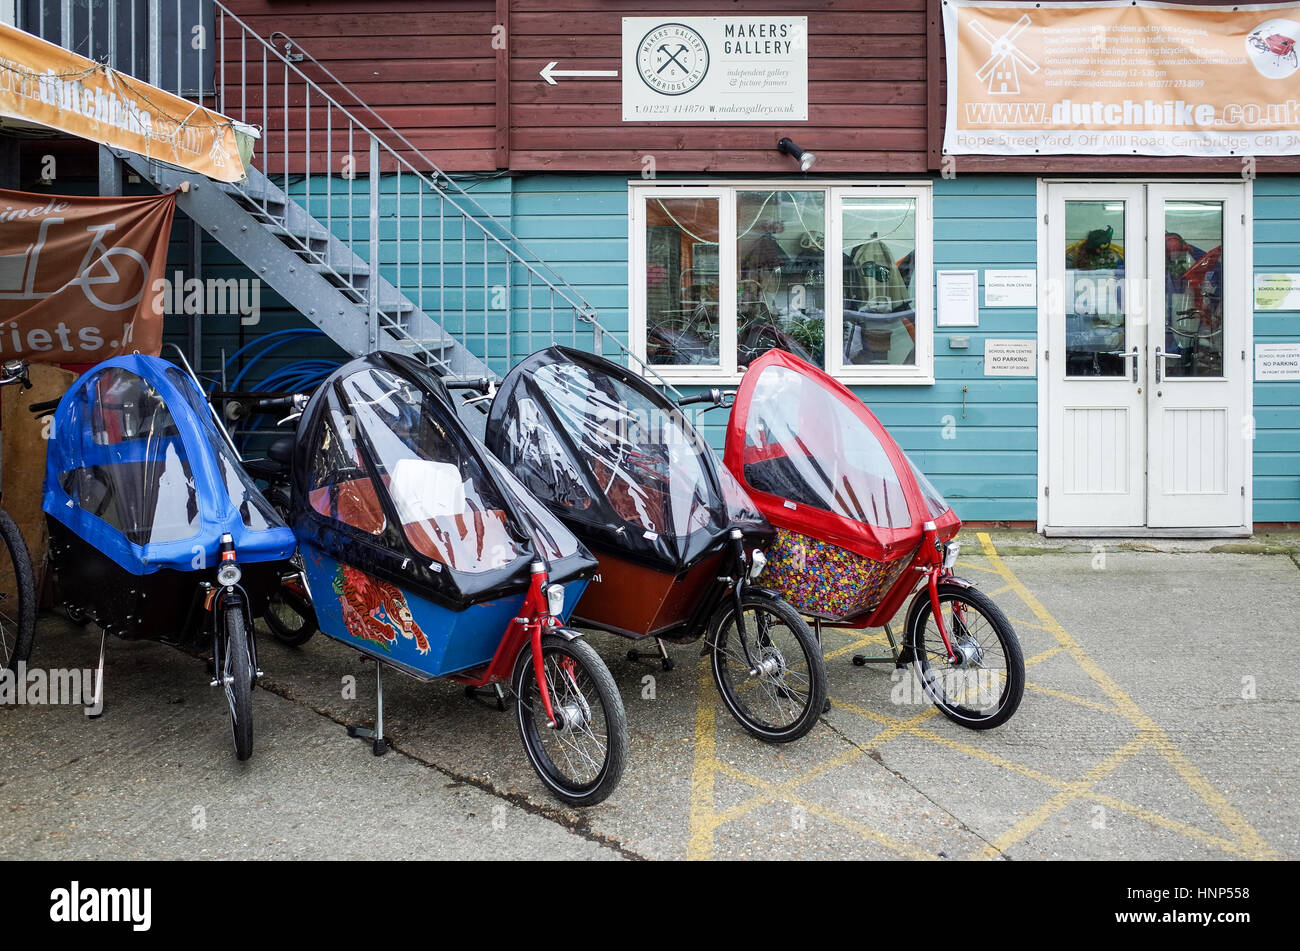 Cargo Bikes For Sale At The Dutchbike Store In Mill Road